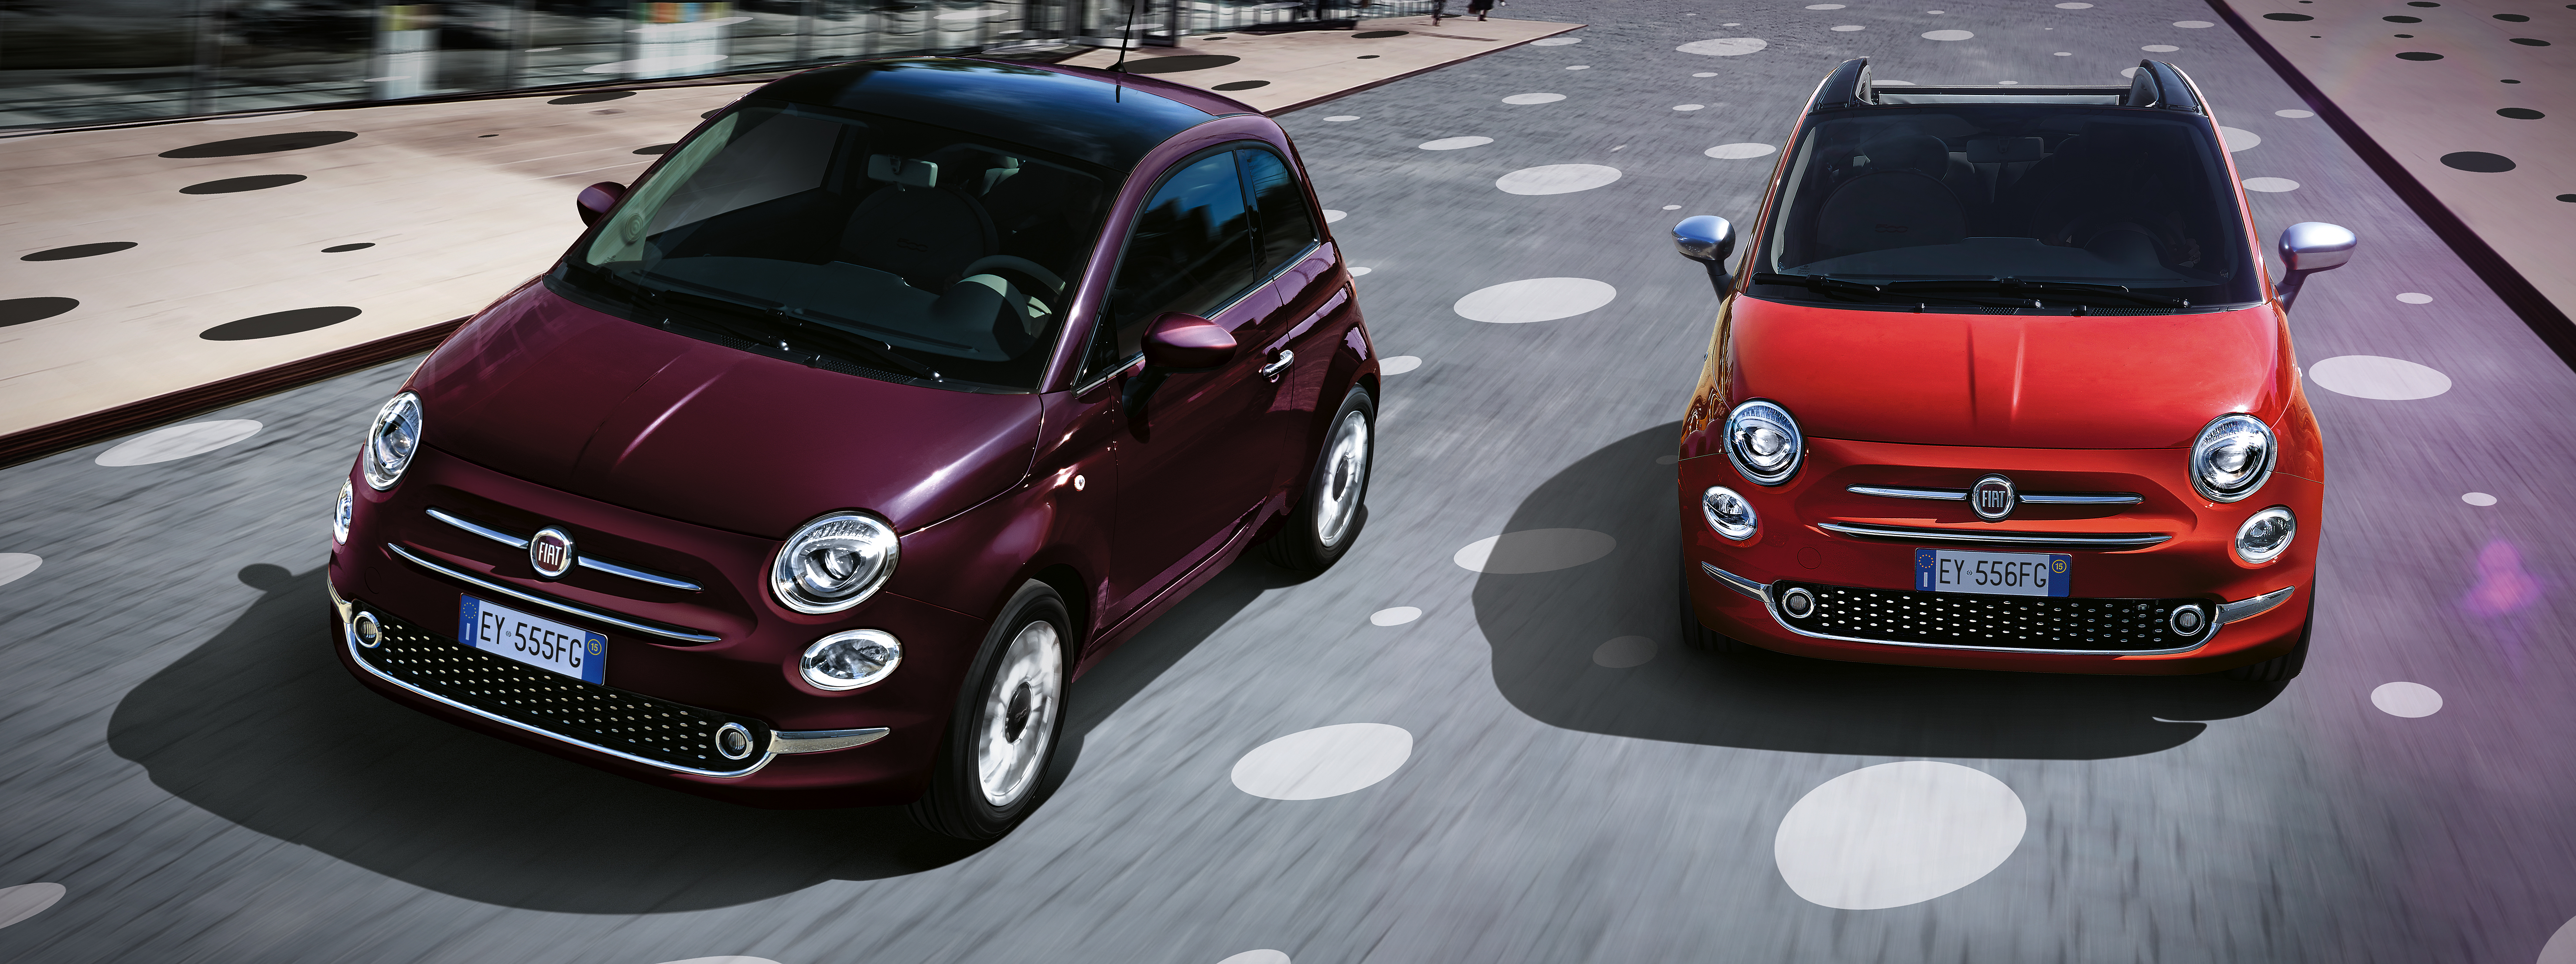 the abarth about cars truth review horsepower img fiat